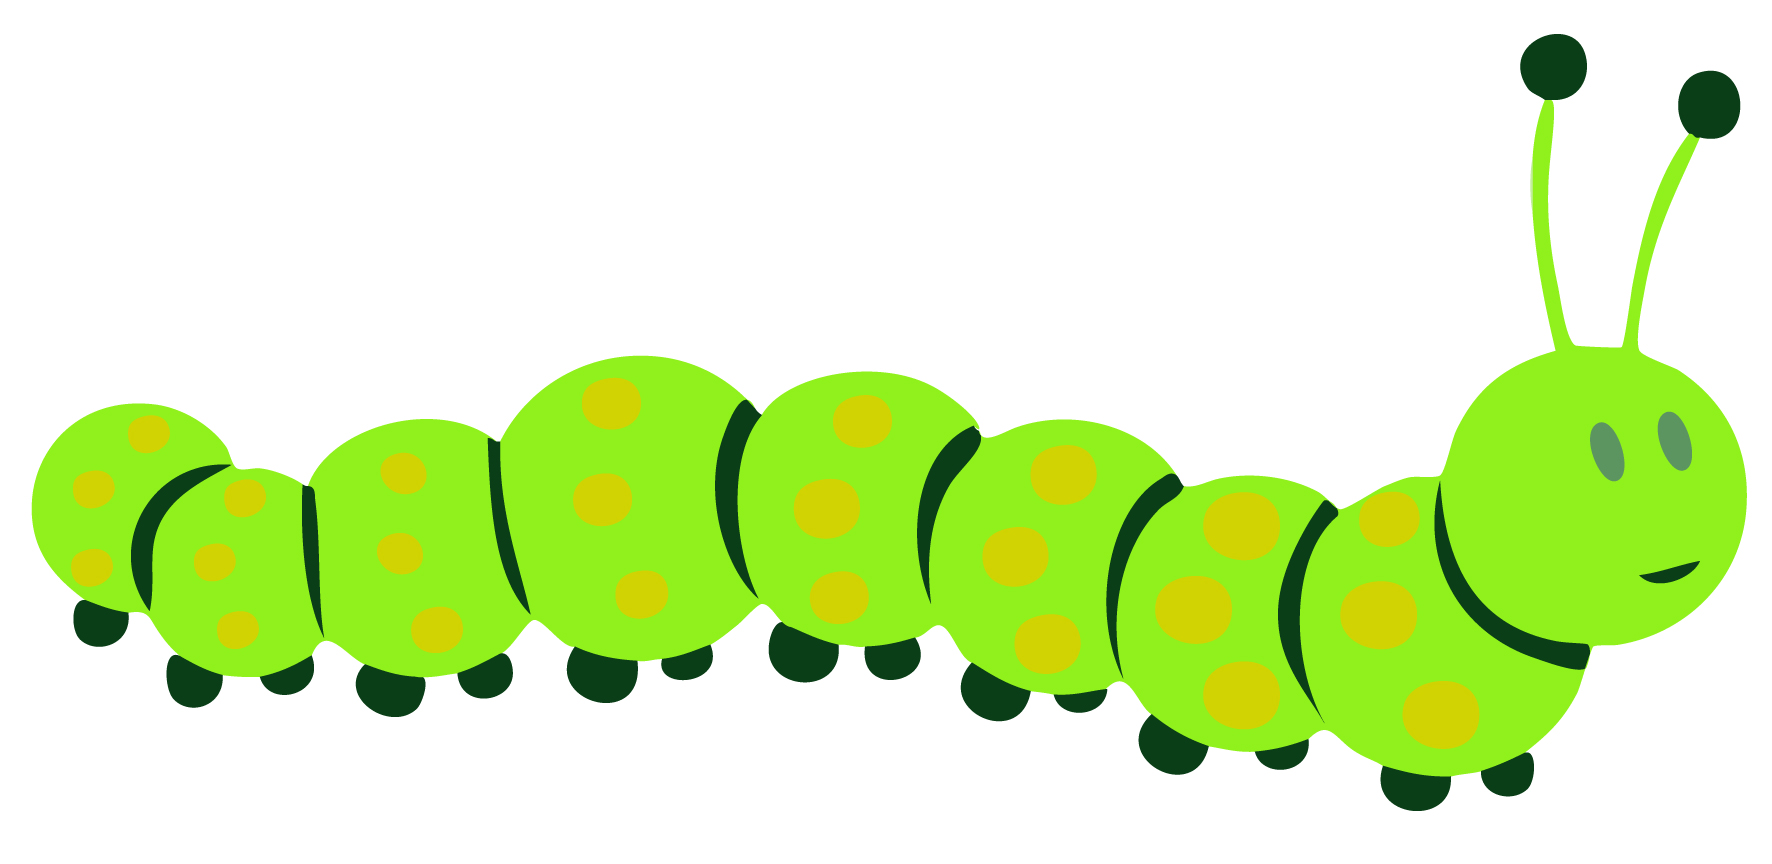 Catepillar clipart clipart picture freeuse download Caterpillar Clip Art & Caterpillar Clip Art Clip Art Images ... picture freeuse download